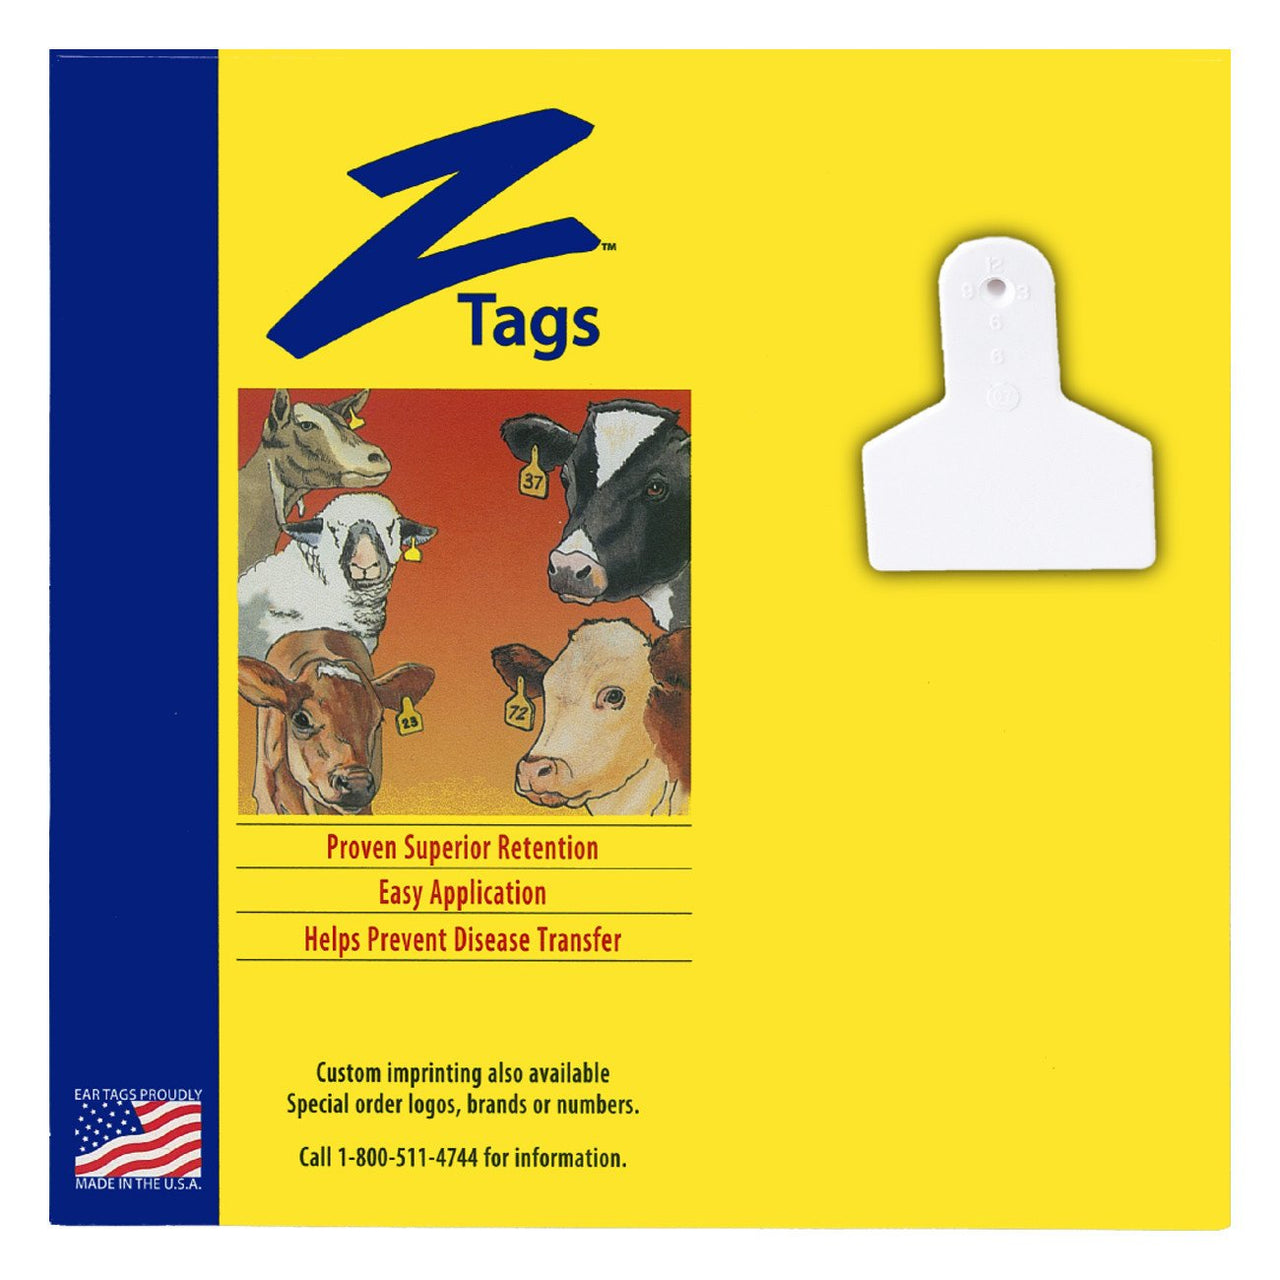 Z Tags 1 Piece Small Animal Blank (White) 25 Pack - 1 Piece Small Animal Blank Tag Z Tags - Canada